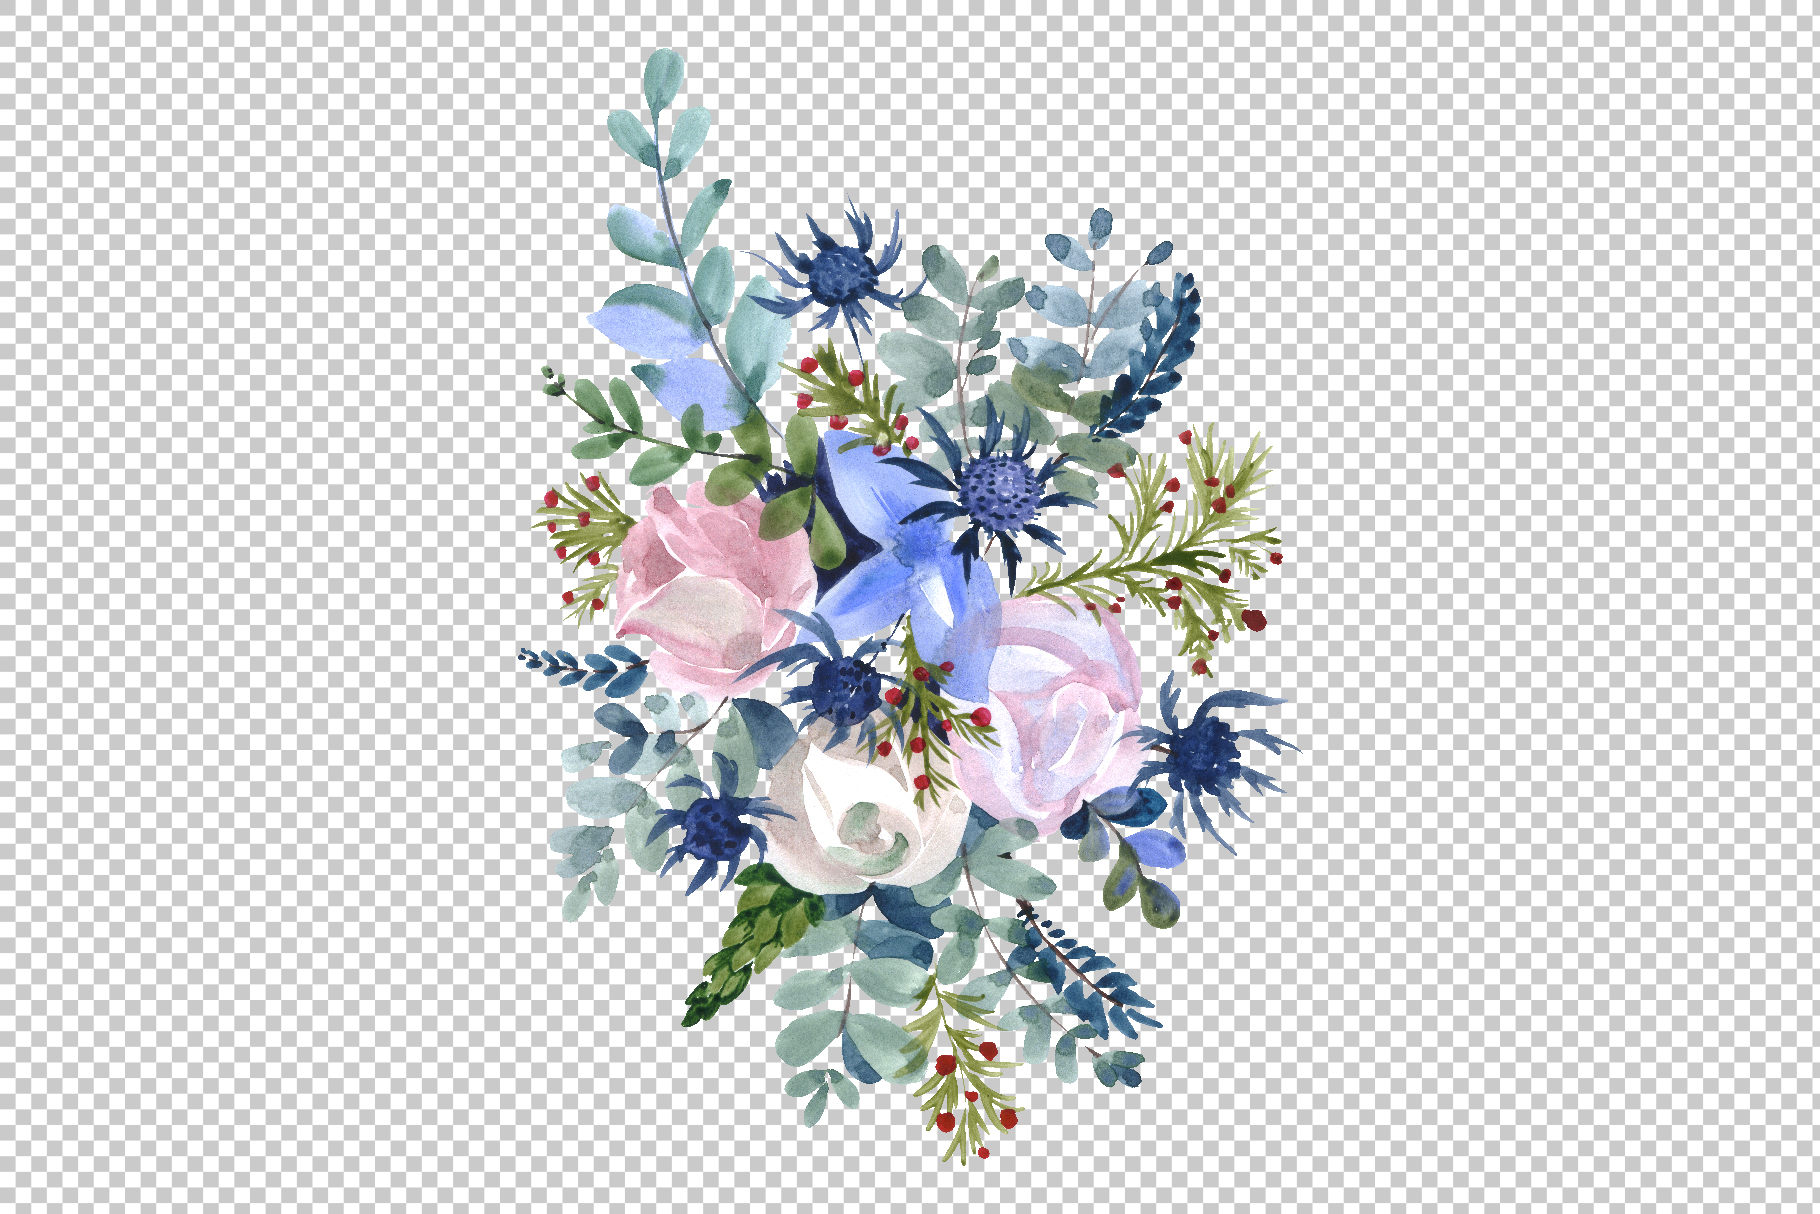 Bouquets with wildflowers, Roses, leaves Watercolor png example image 4